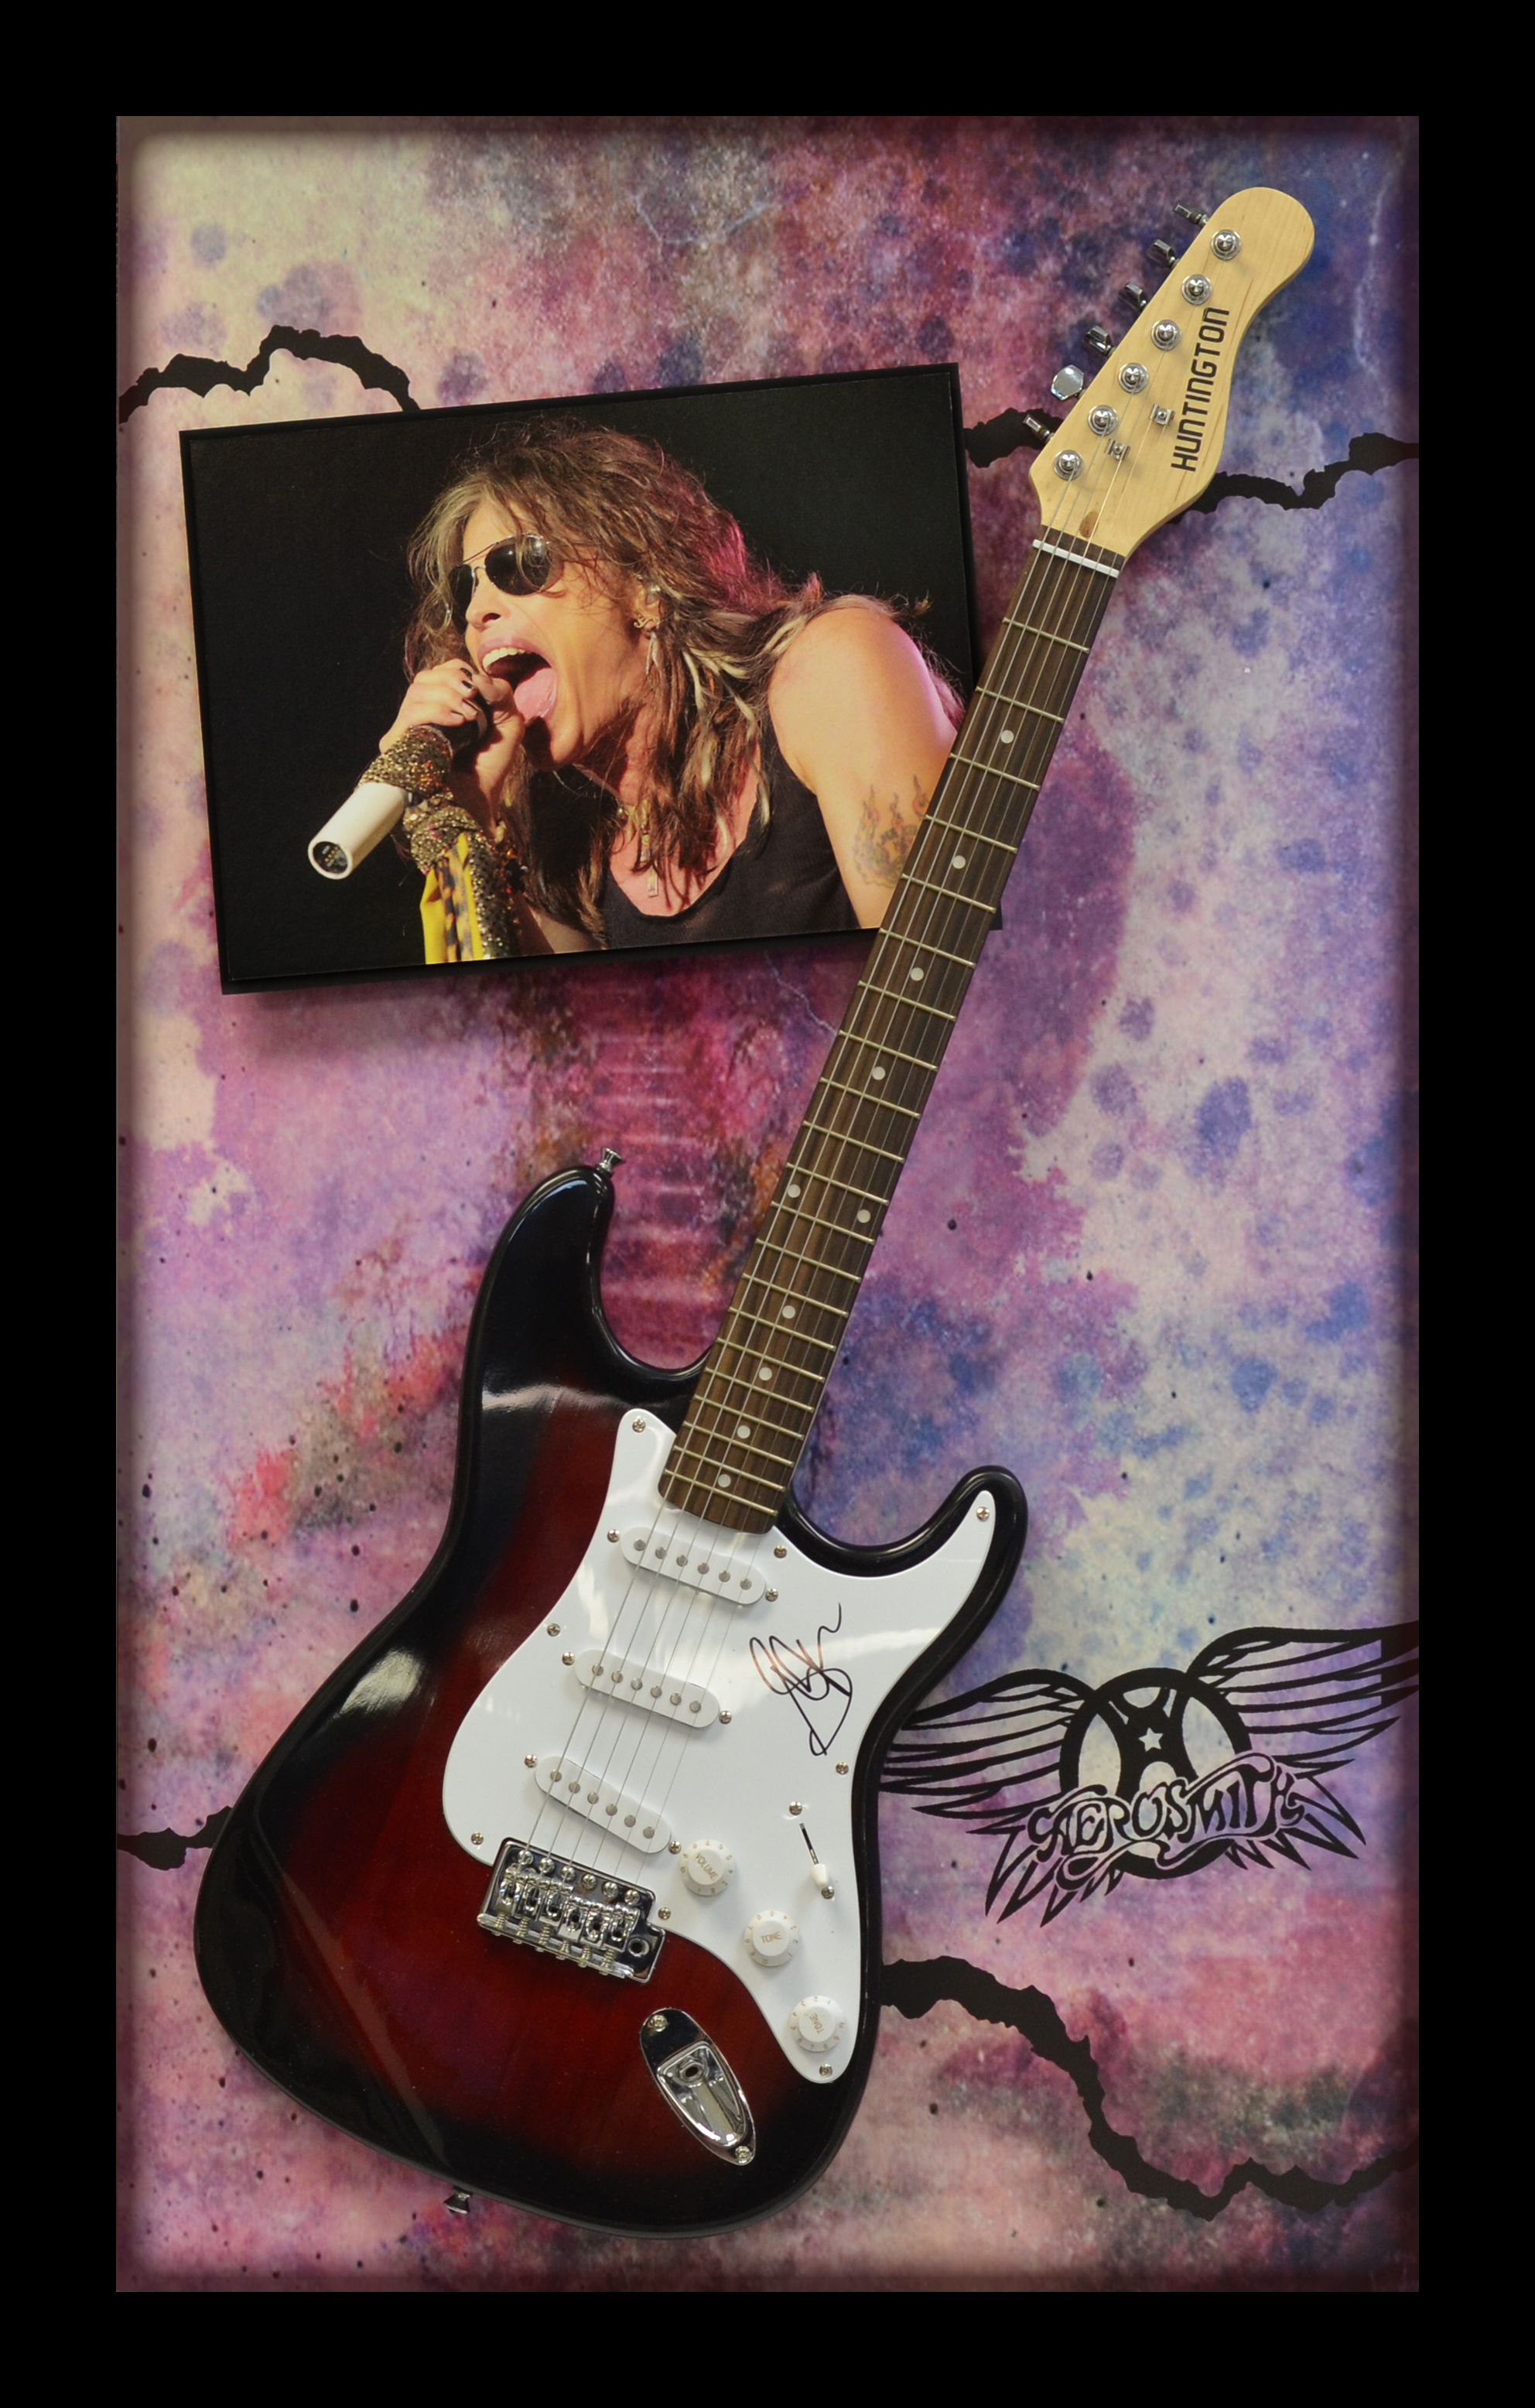 Aerosmithy Guitar Shadowbox